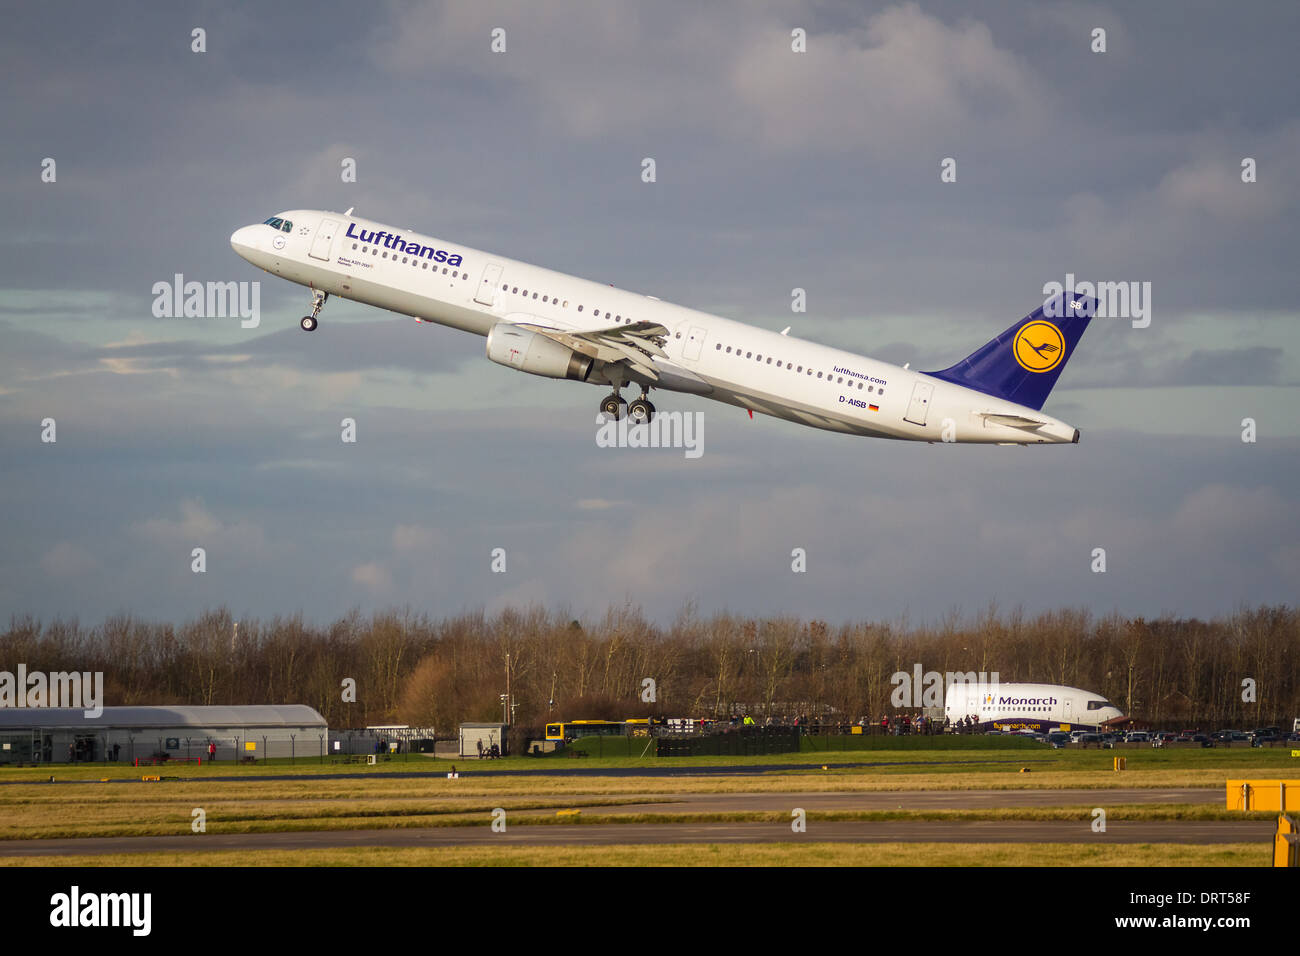 Lufthansa Airbus A321-231 D-AISB taking off from Manchester Airport - Stock Image